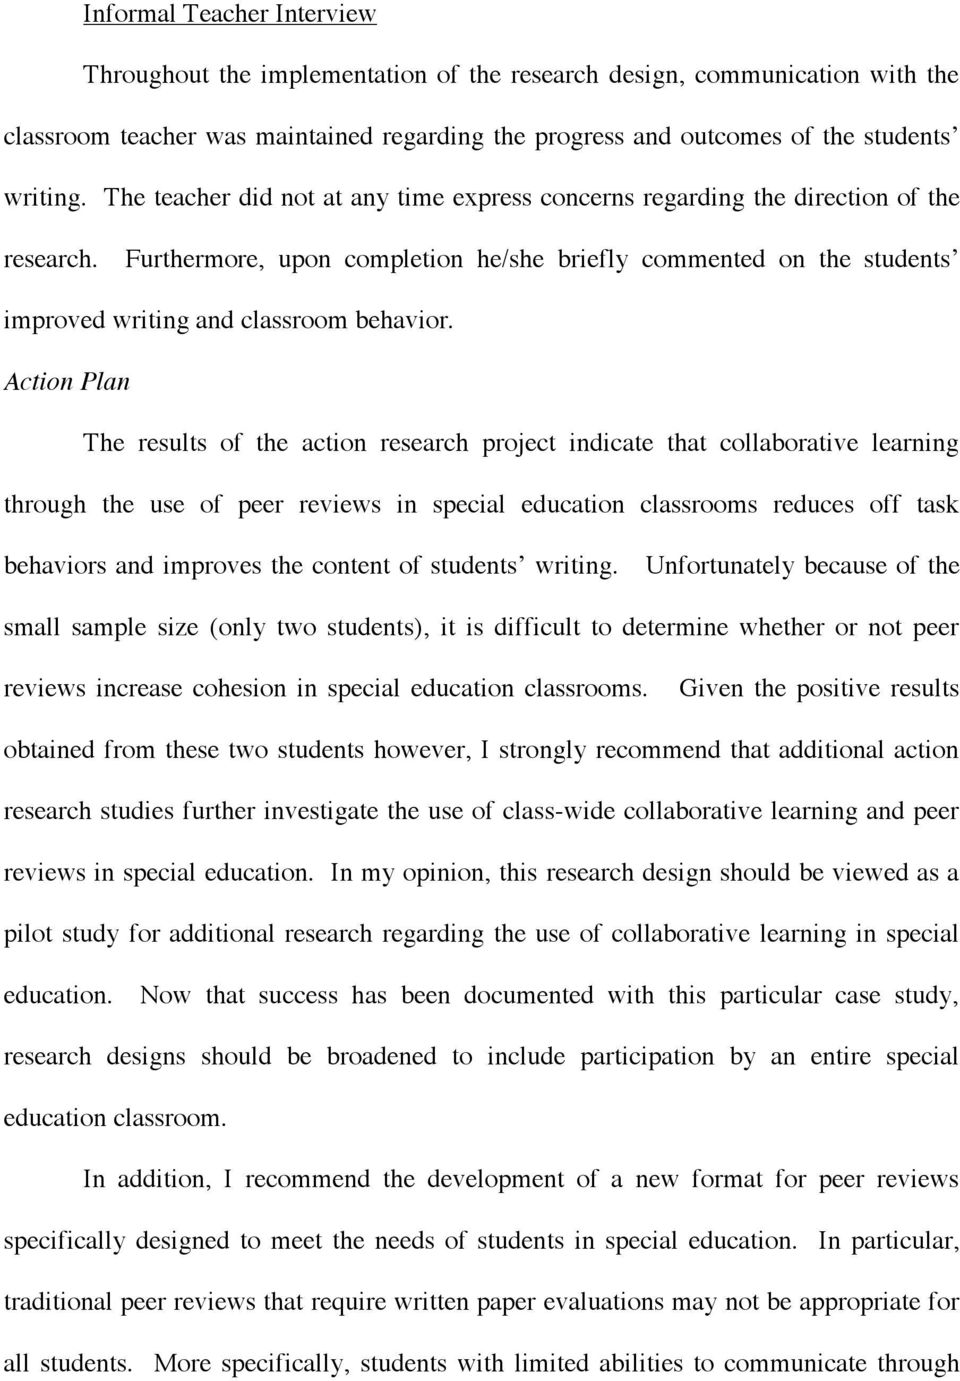 Action Plan The results of the action research project indicate that collaborative learning through the use of peer reviews in special education classrooms reduces off task behaviors and improves the